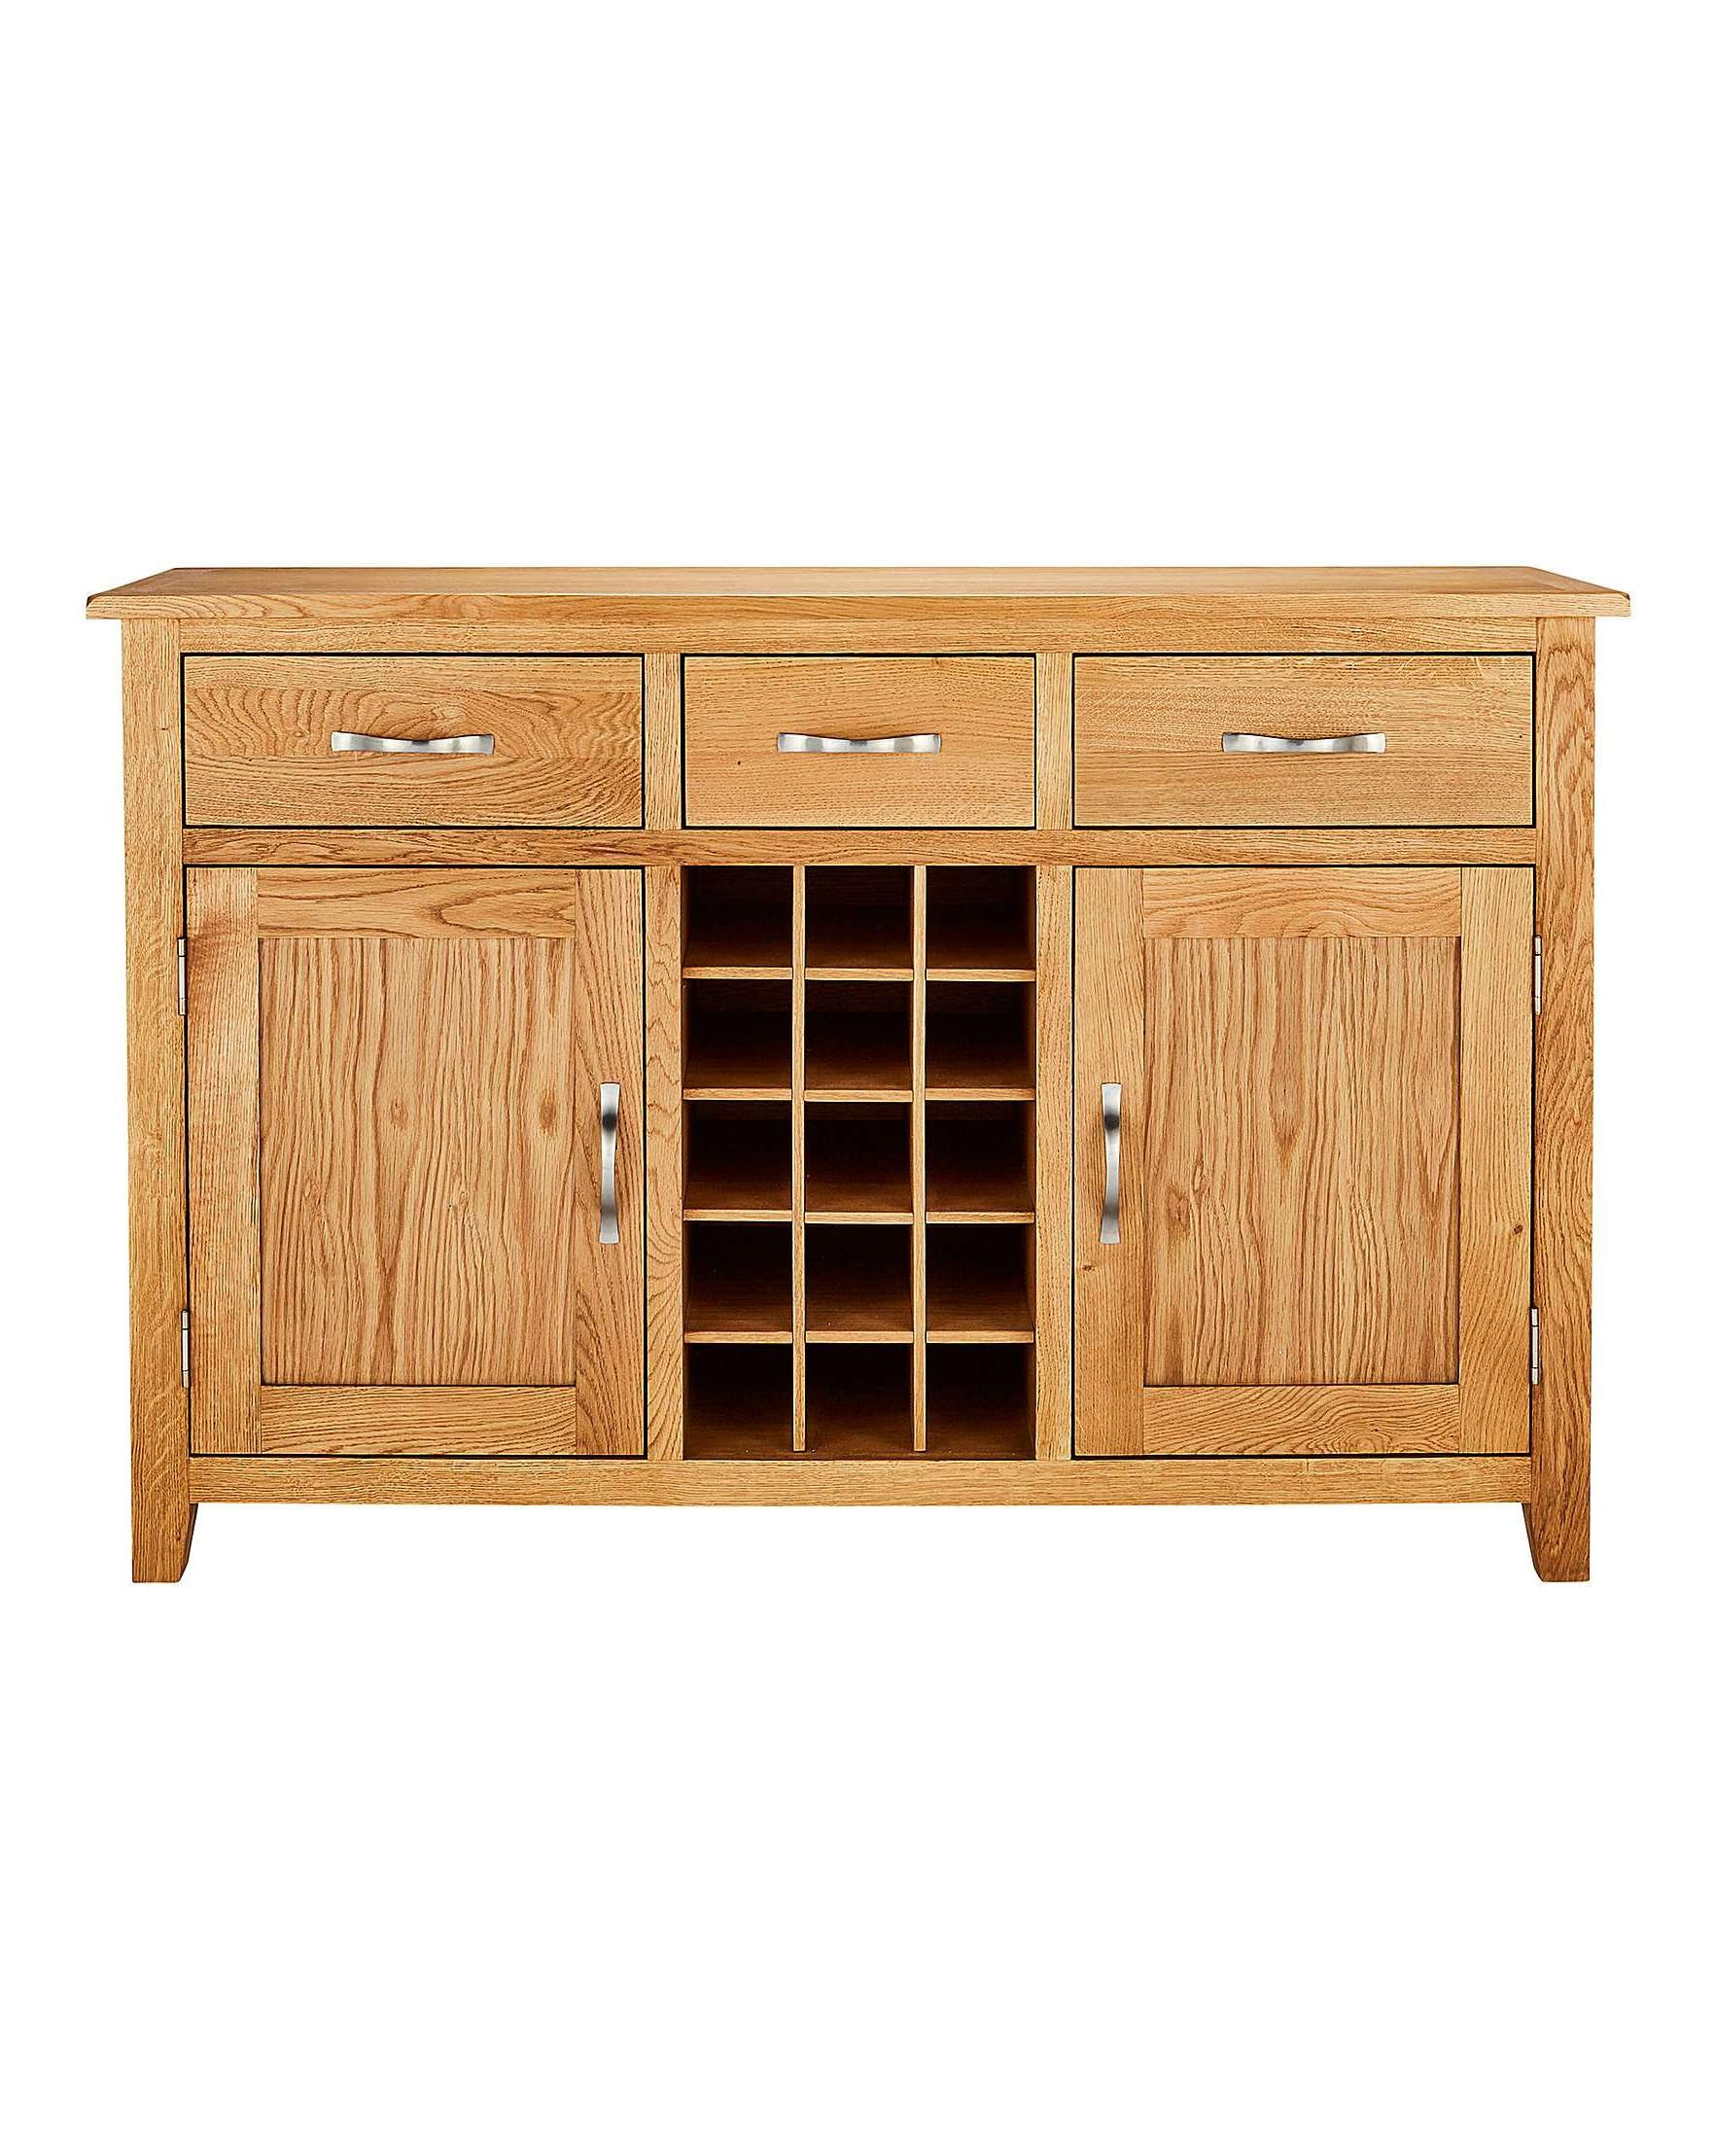 Cabinets & Sideboards | Lounge Furniture | Home | J D Williams Intended For Sideboards Cabinets (View 10 of 20)